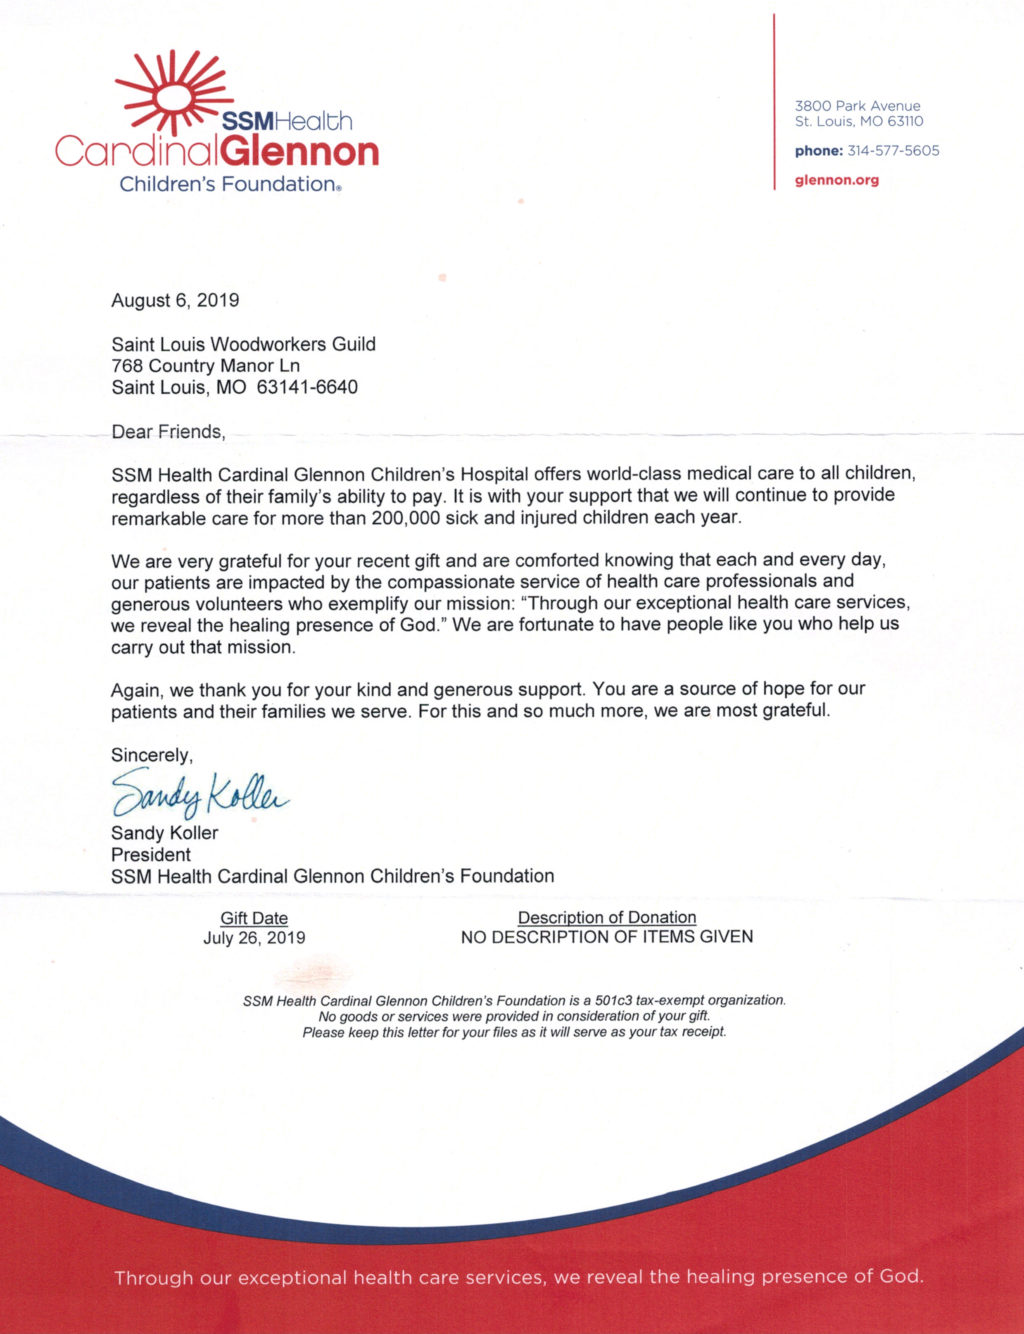 Thank you letter from SSM Health Cardinal Glennon Children's Foundation